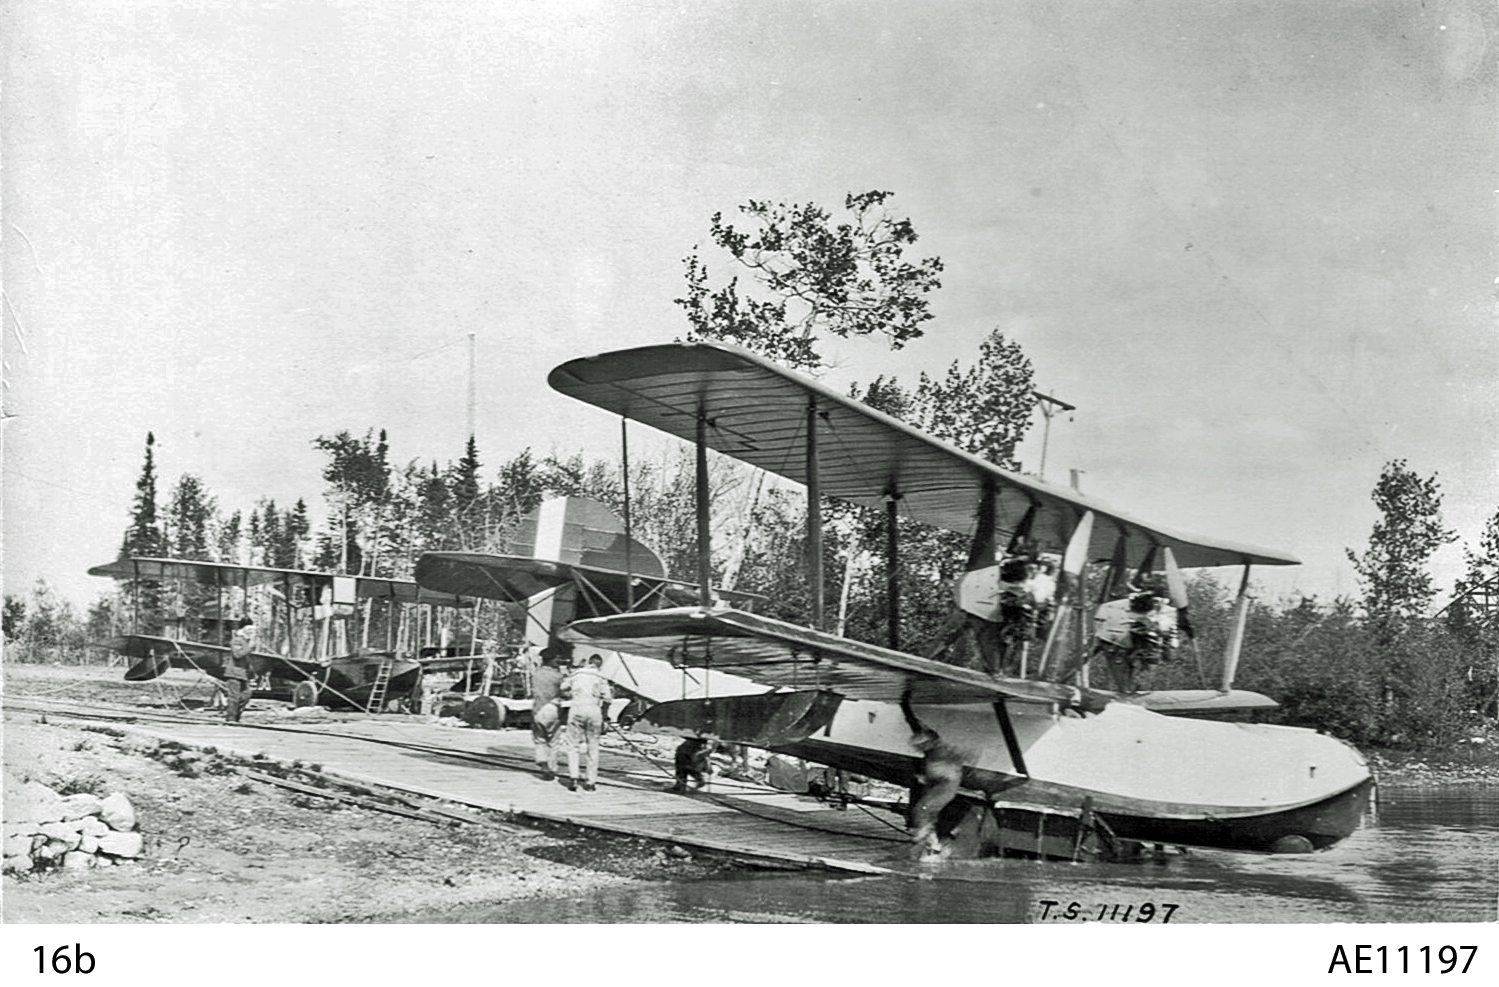 The Vickers Varuna Aircraft